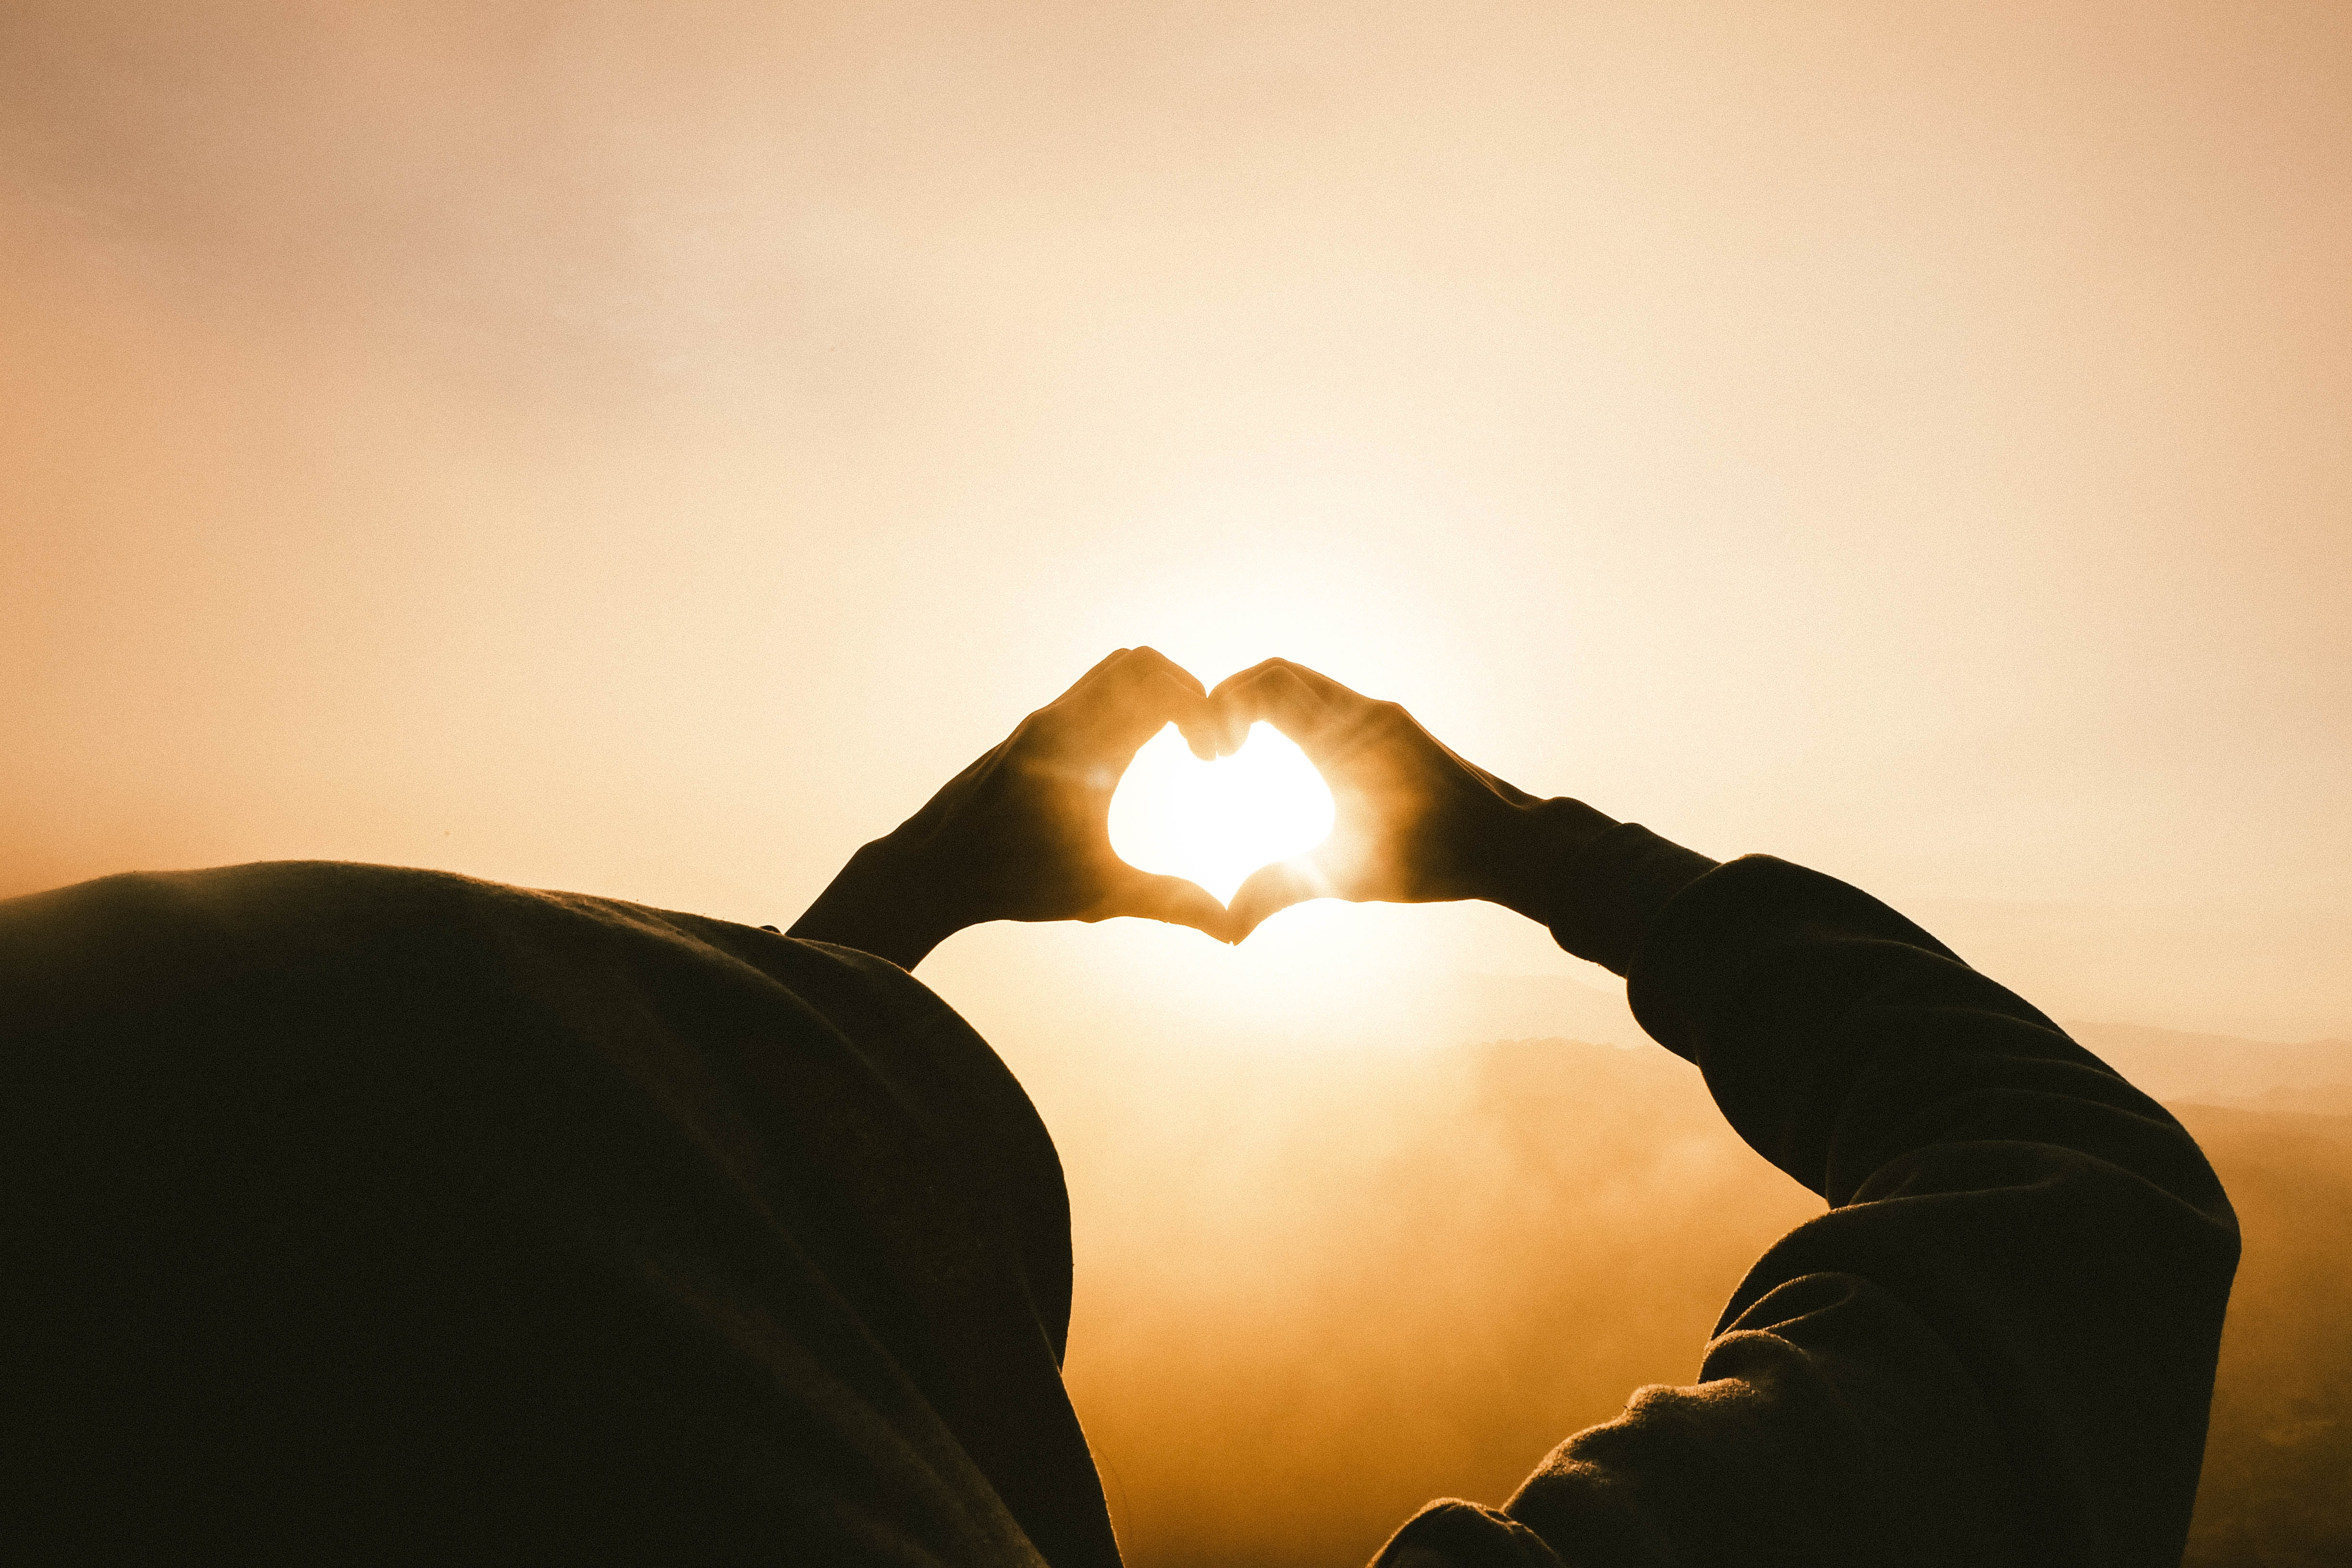 Silhouette hands making a heart shape pointed towards sun